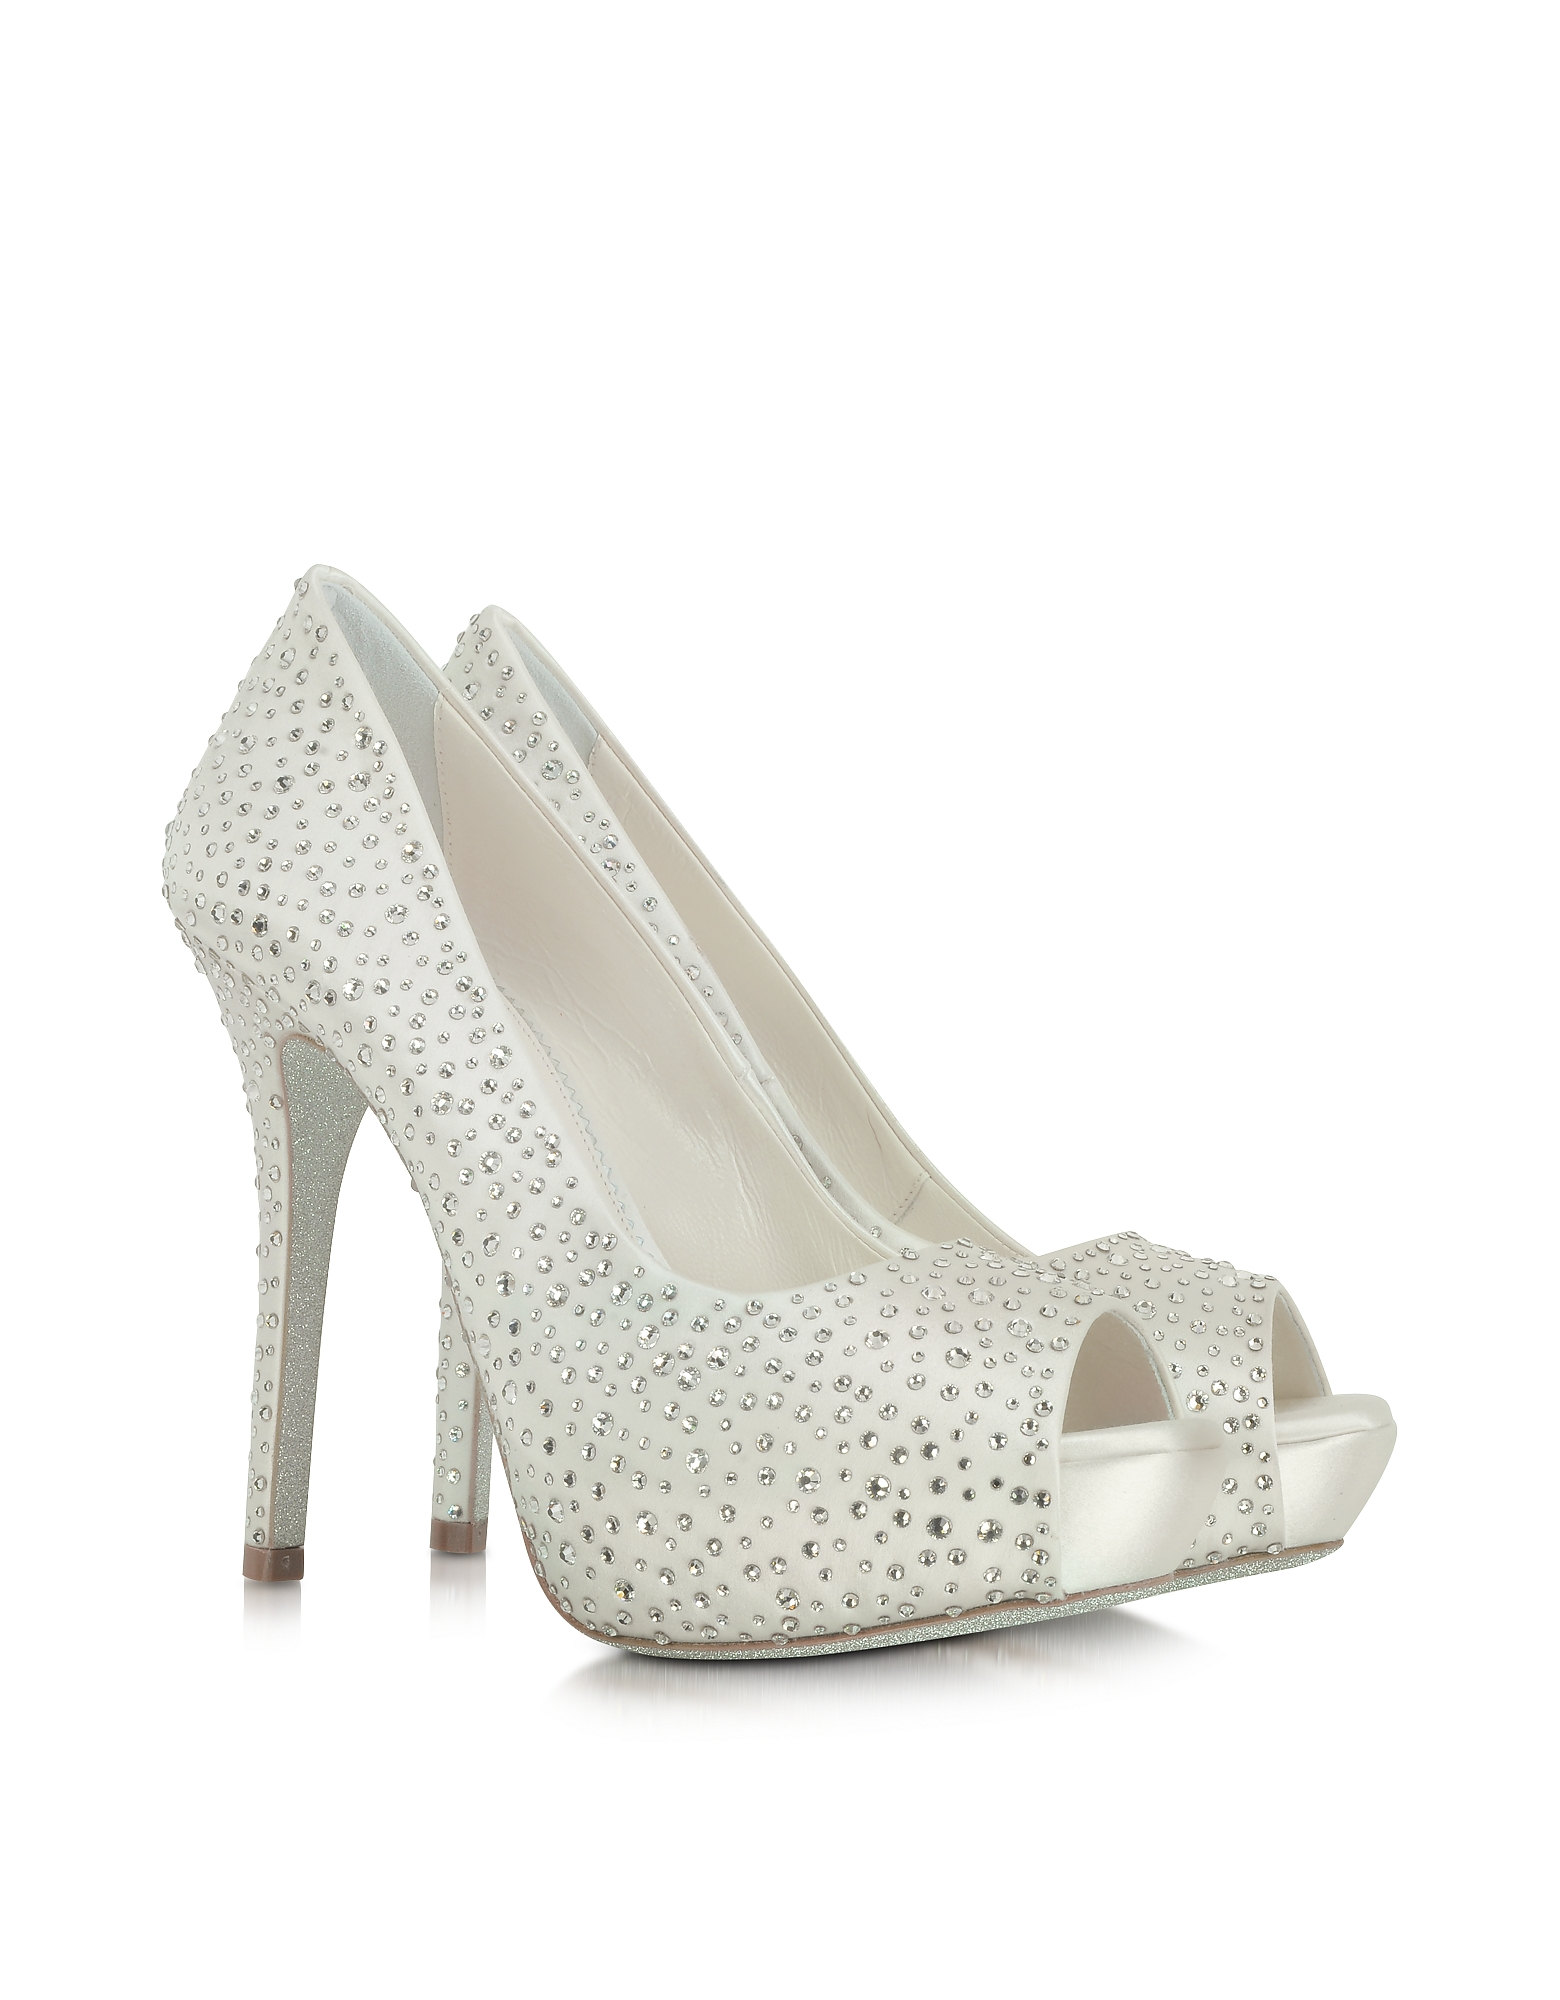 Loriblu Shoes, Ivory Satin Platform Open Toe Pump